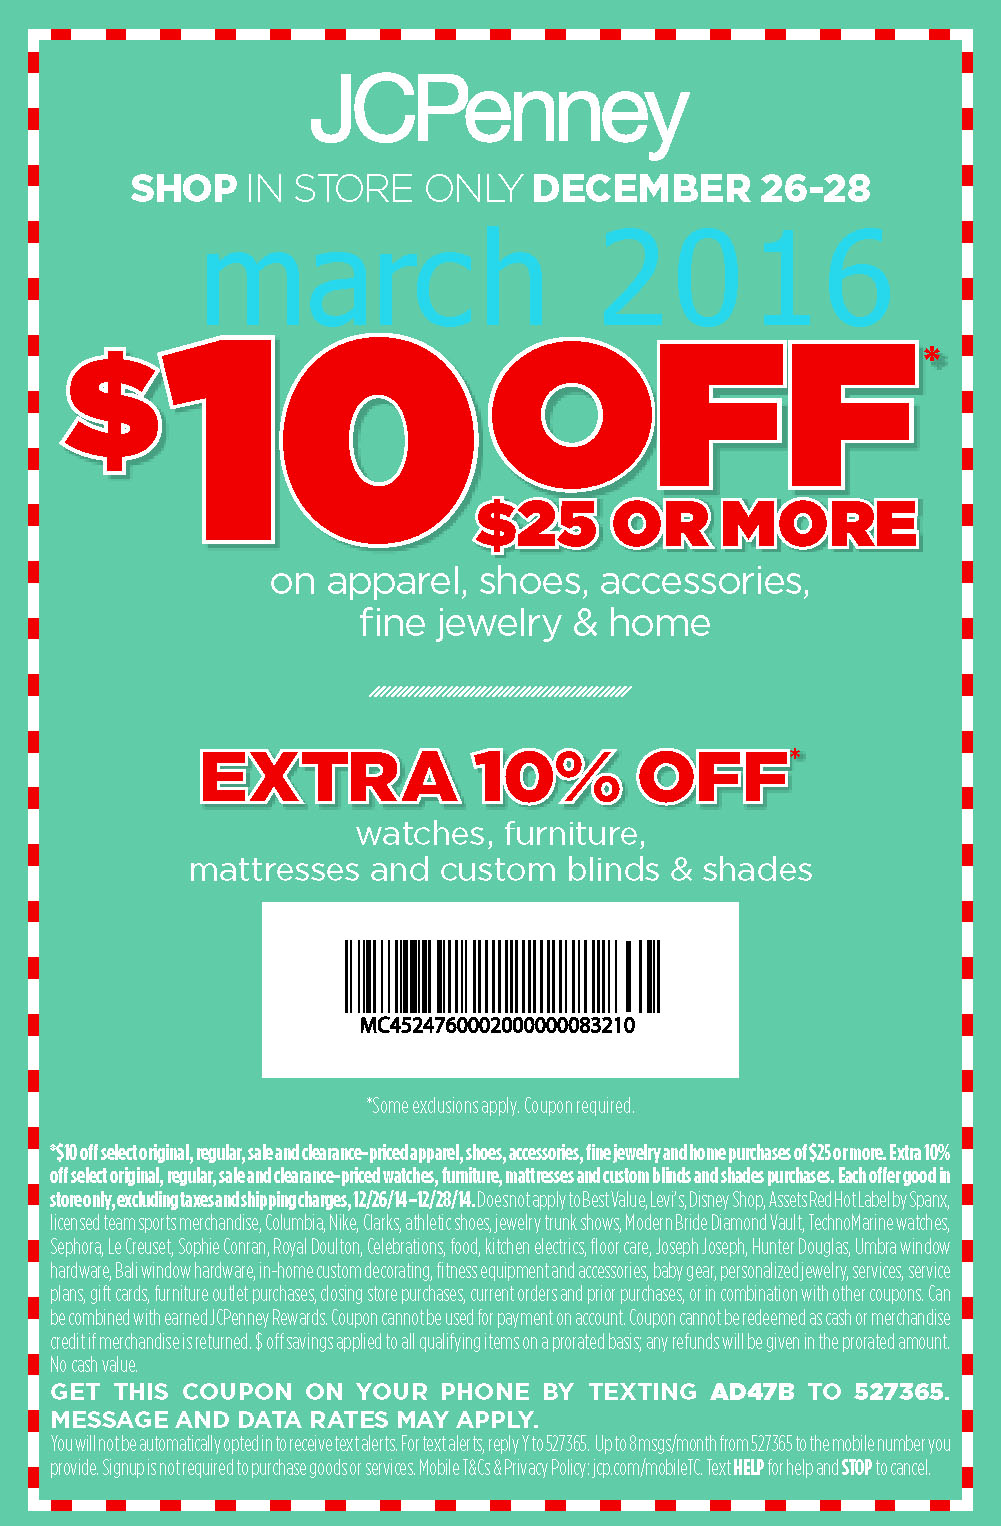 Discount coupons for jcpenney